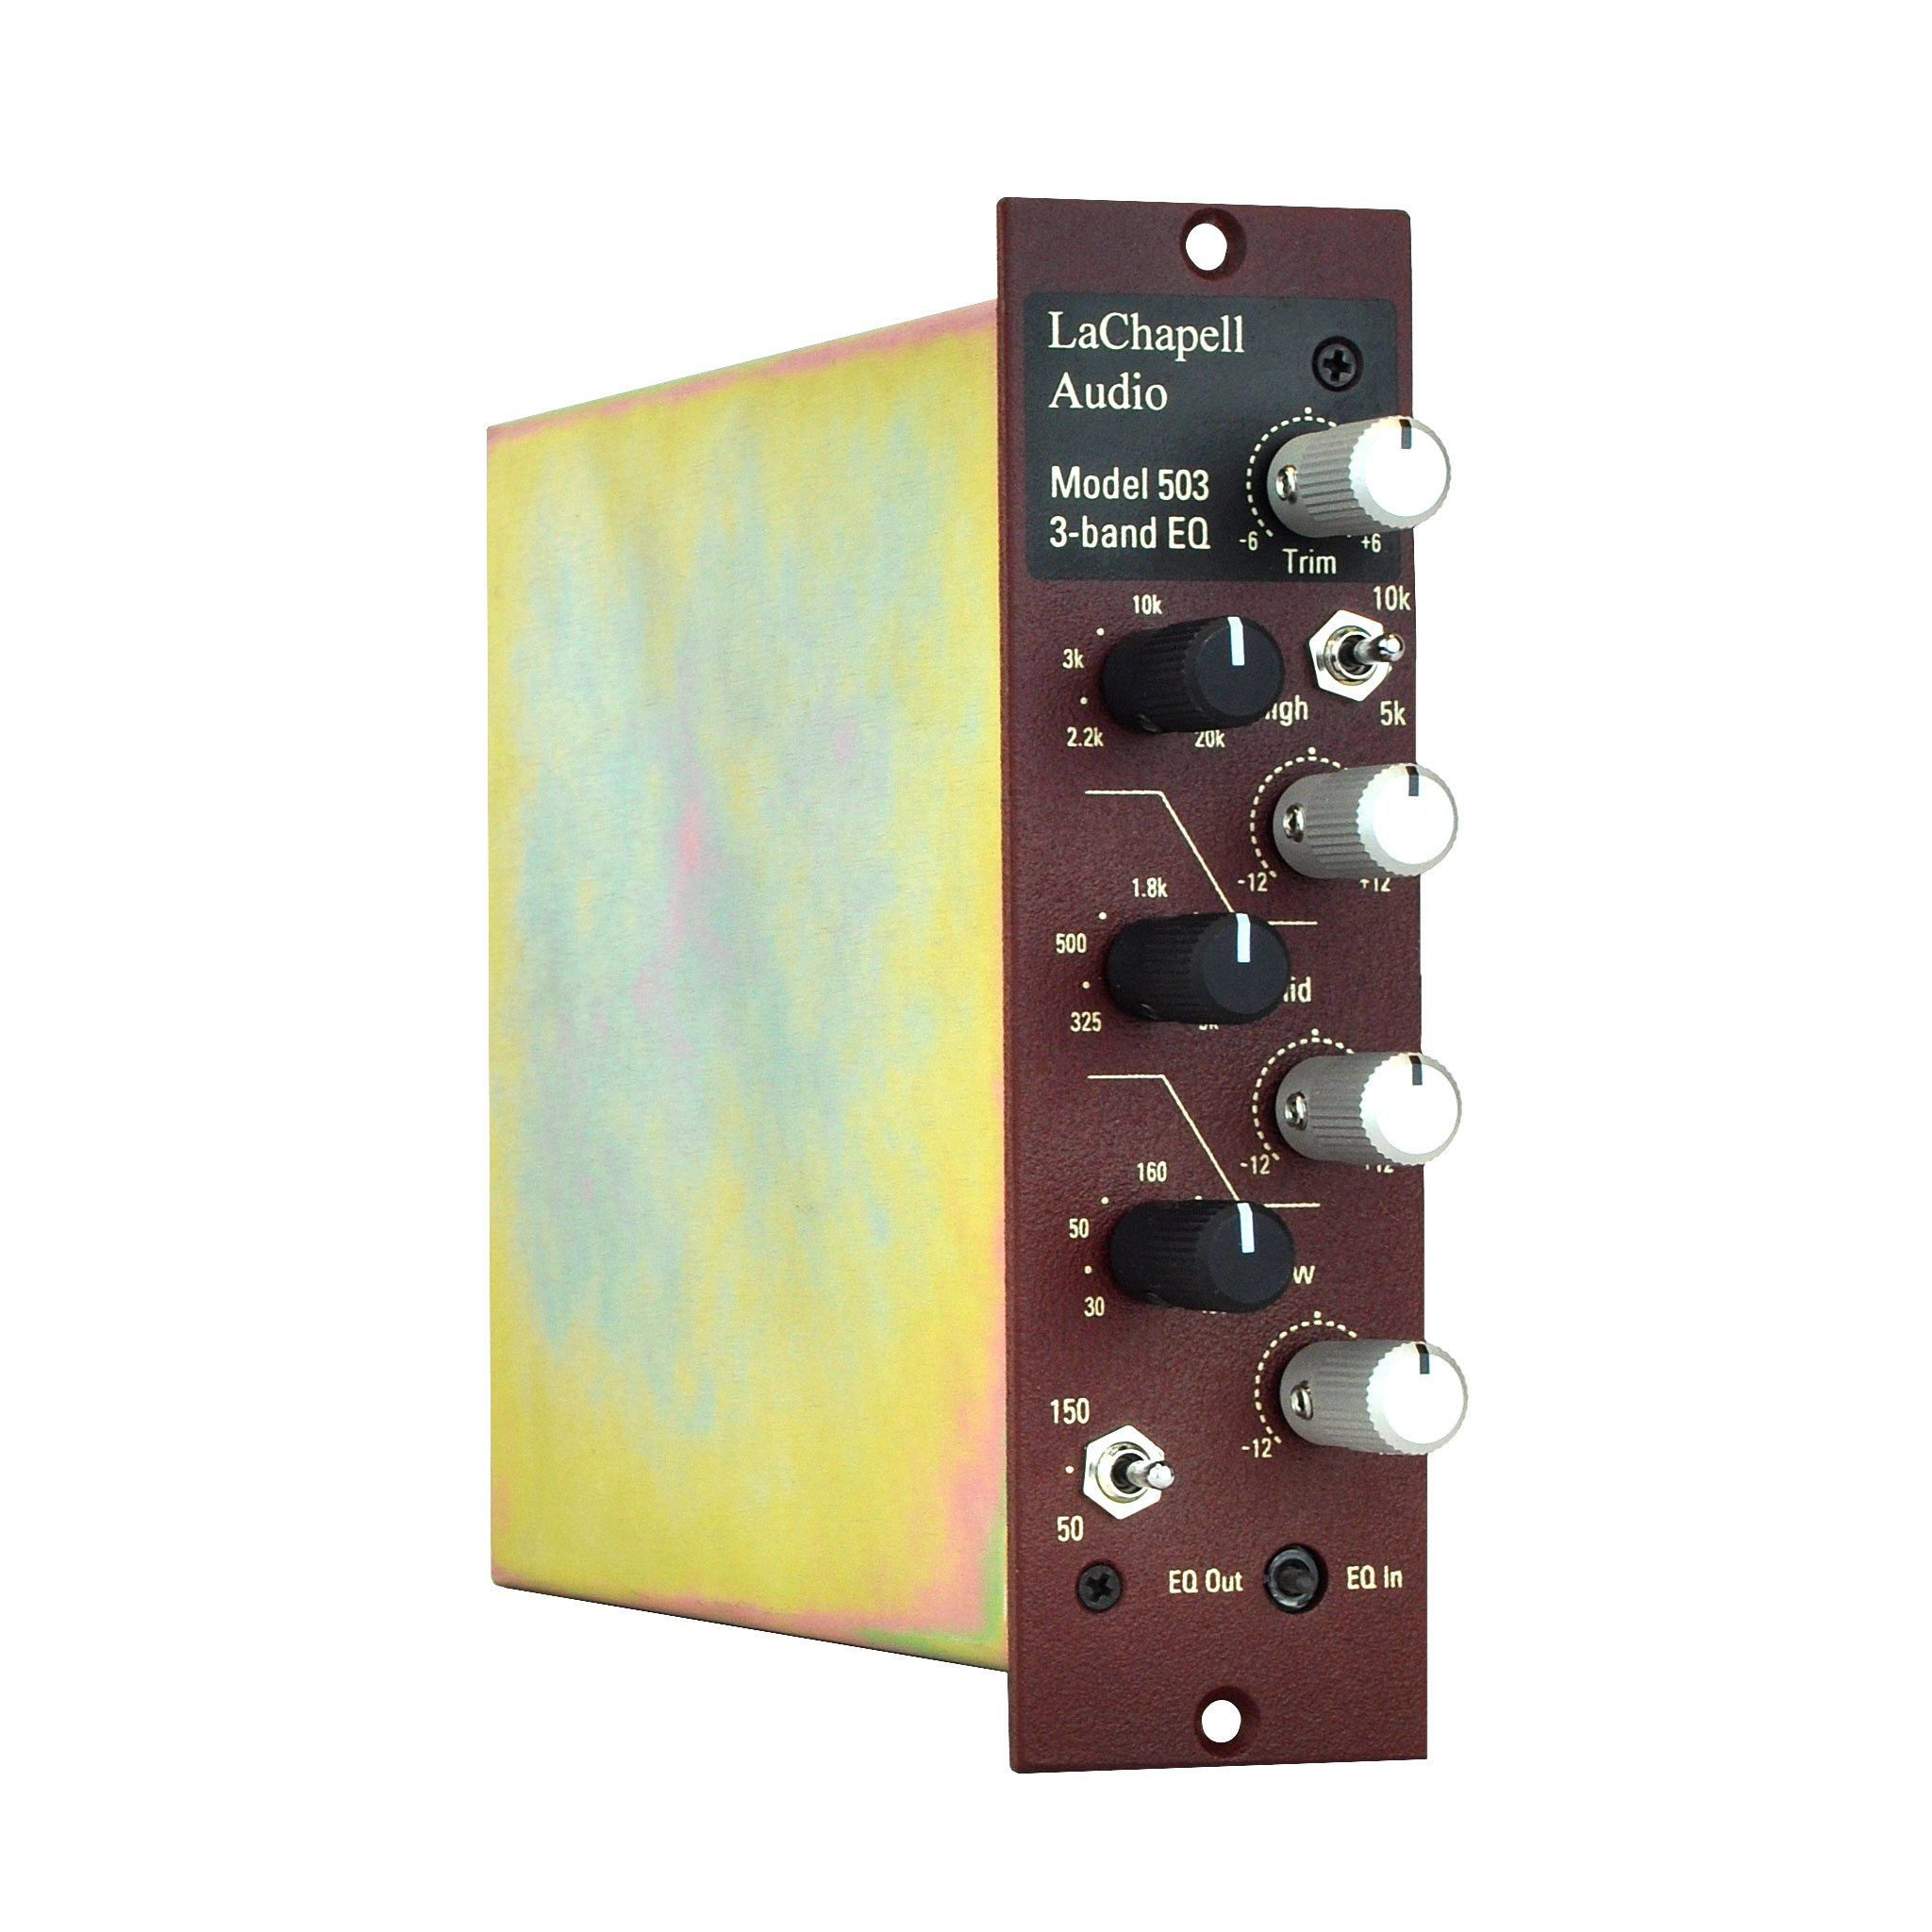 LaChapell Audio 503 500 series EQ angle image